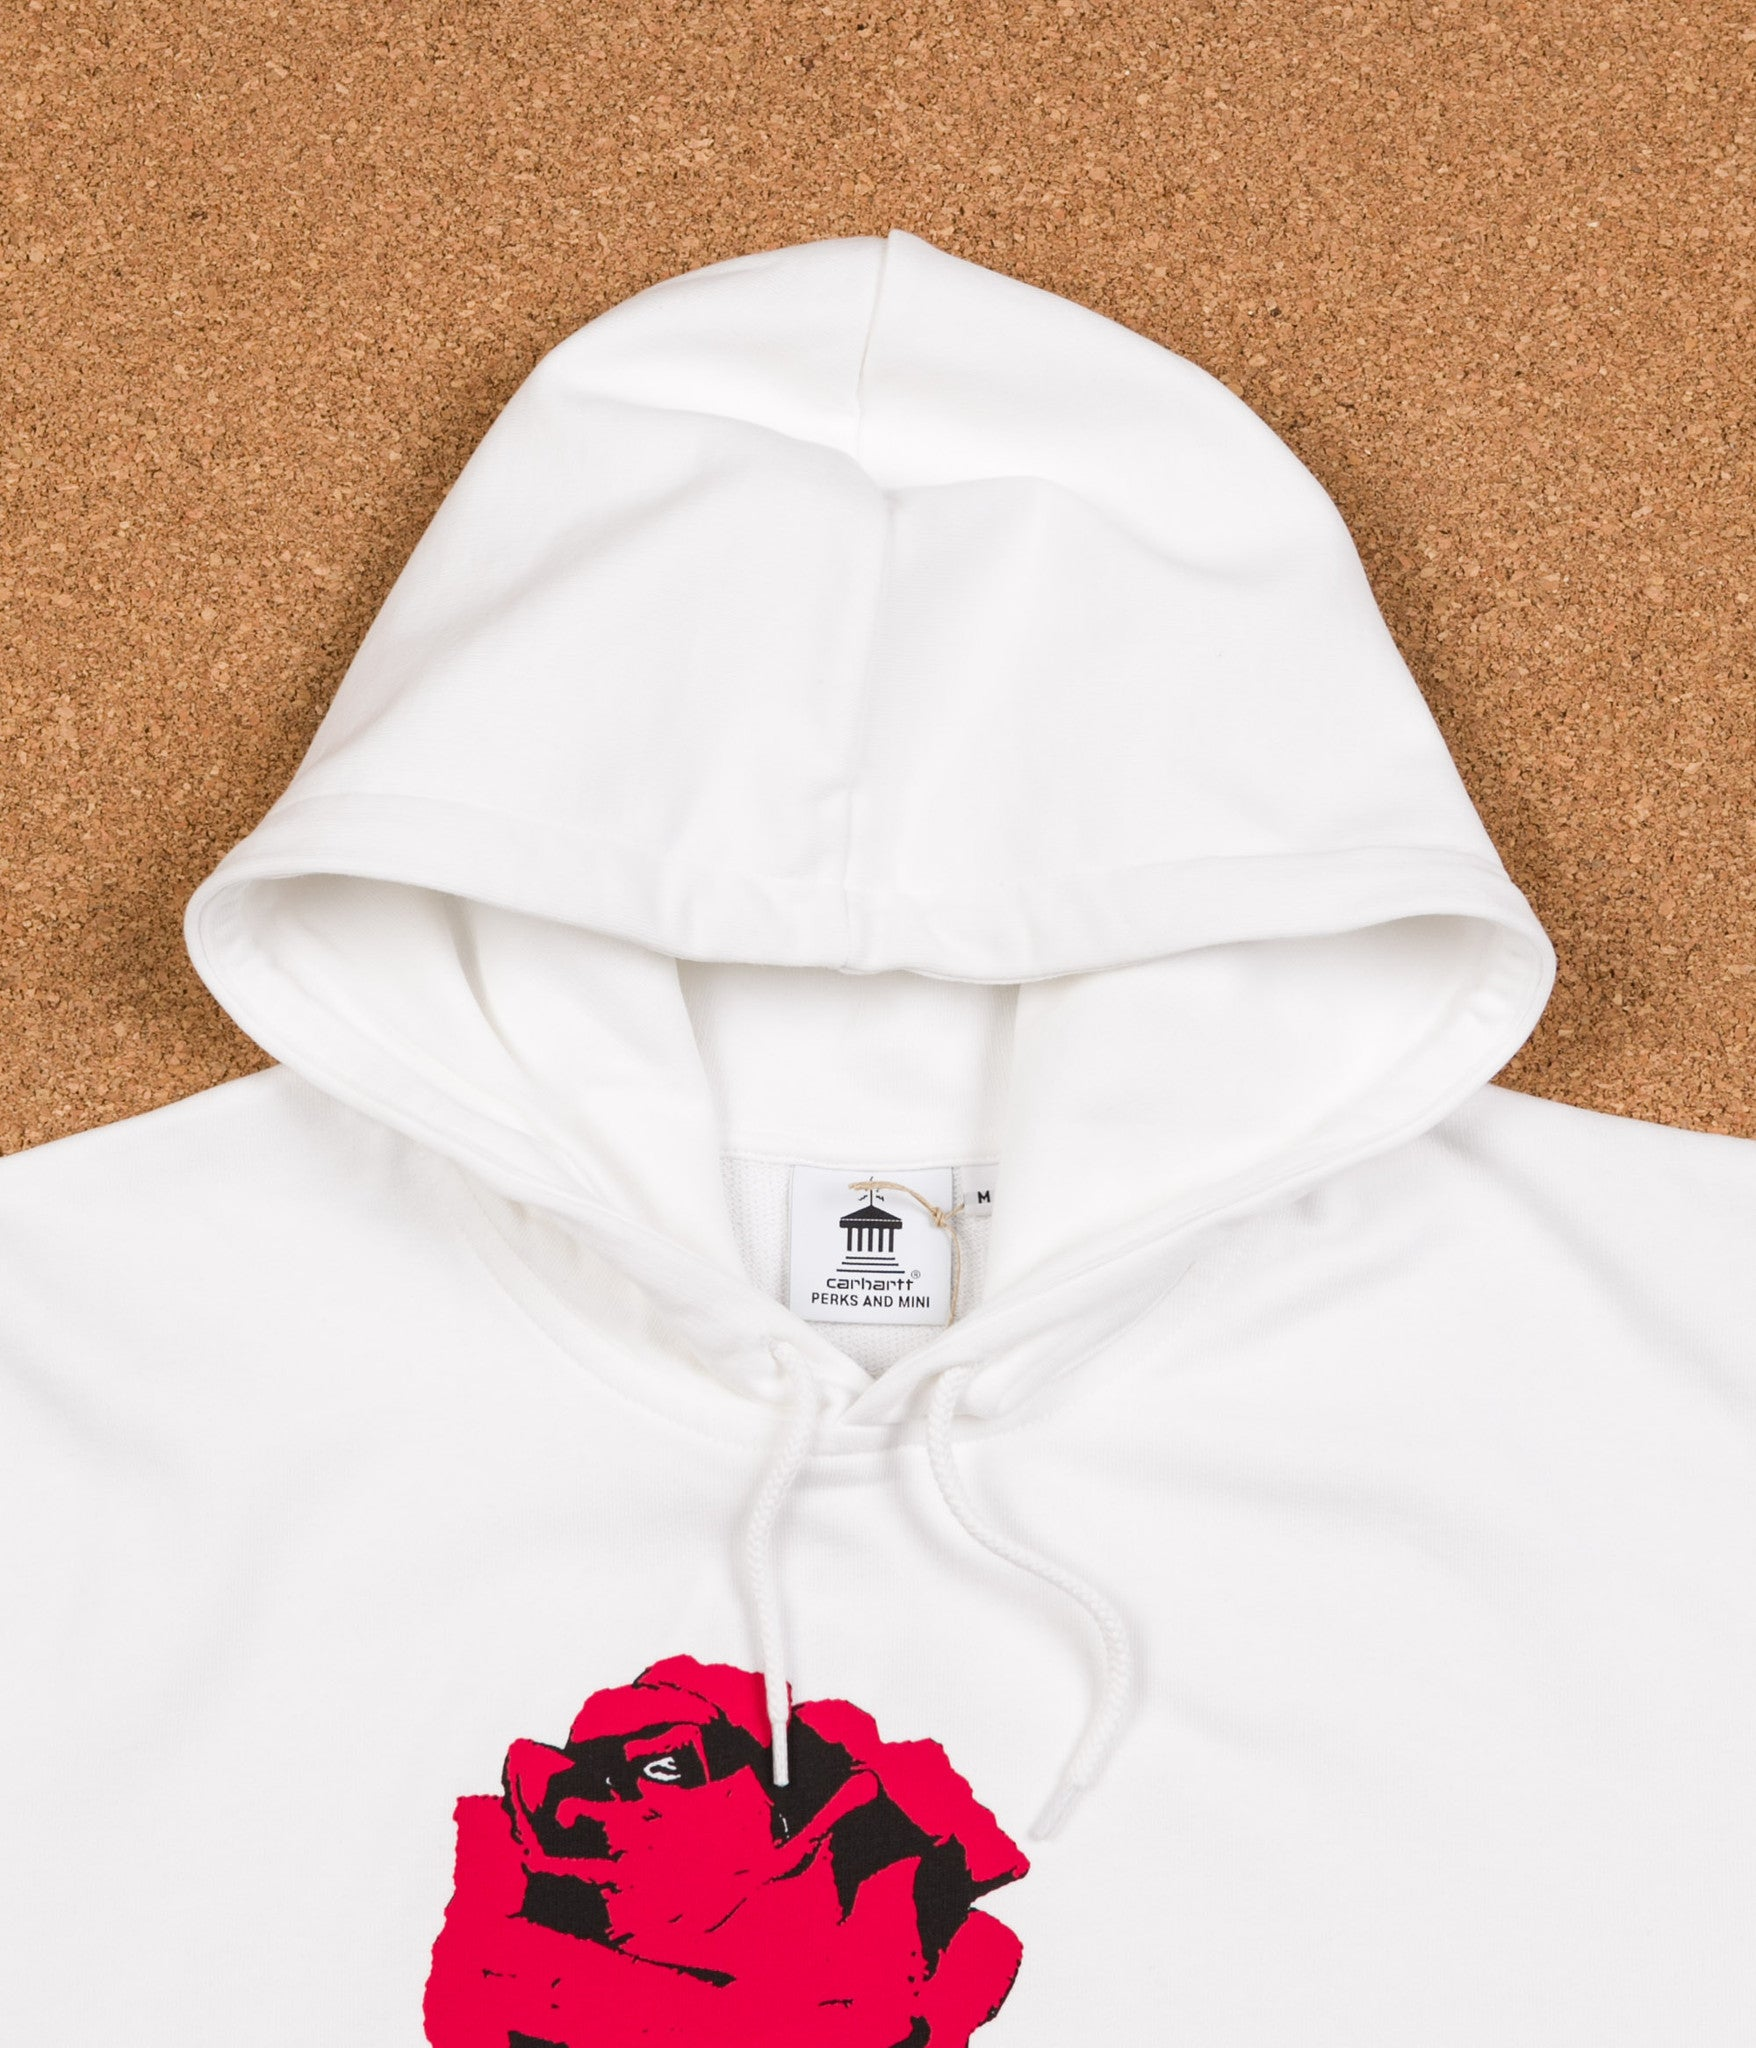 Carhartt x PAM Radio Club L.A. Hooded Sweatshirt - White